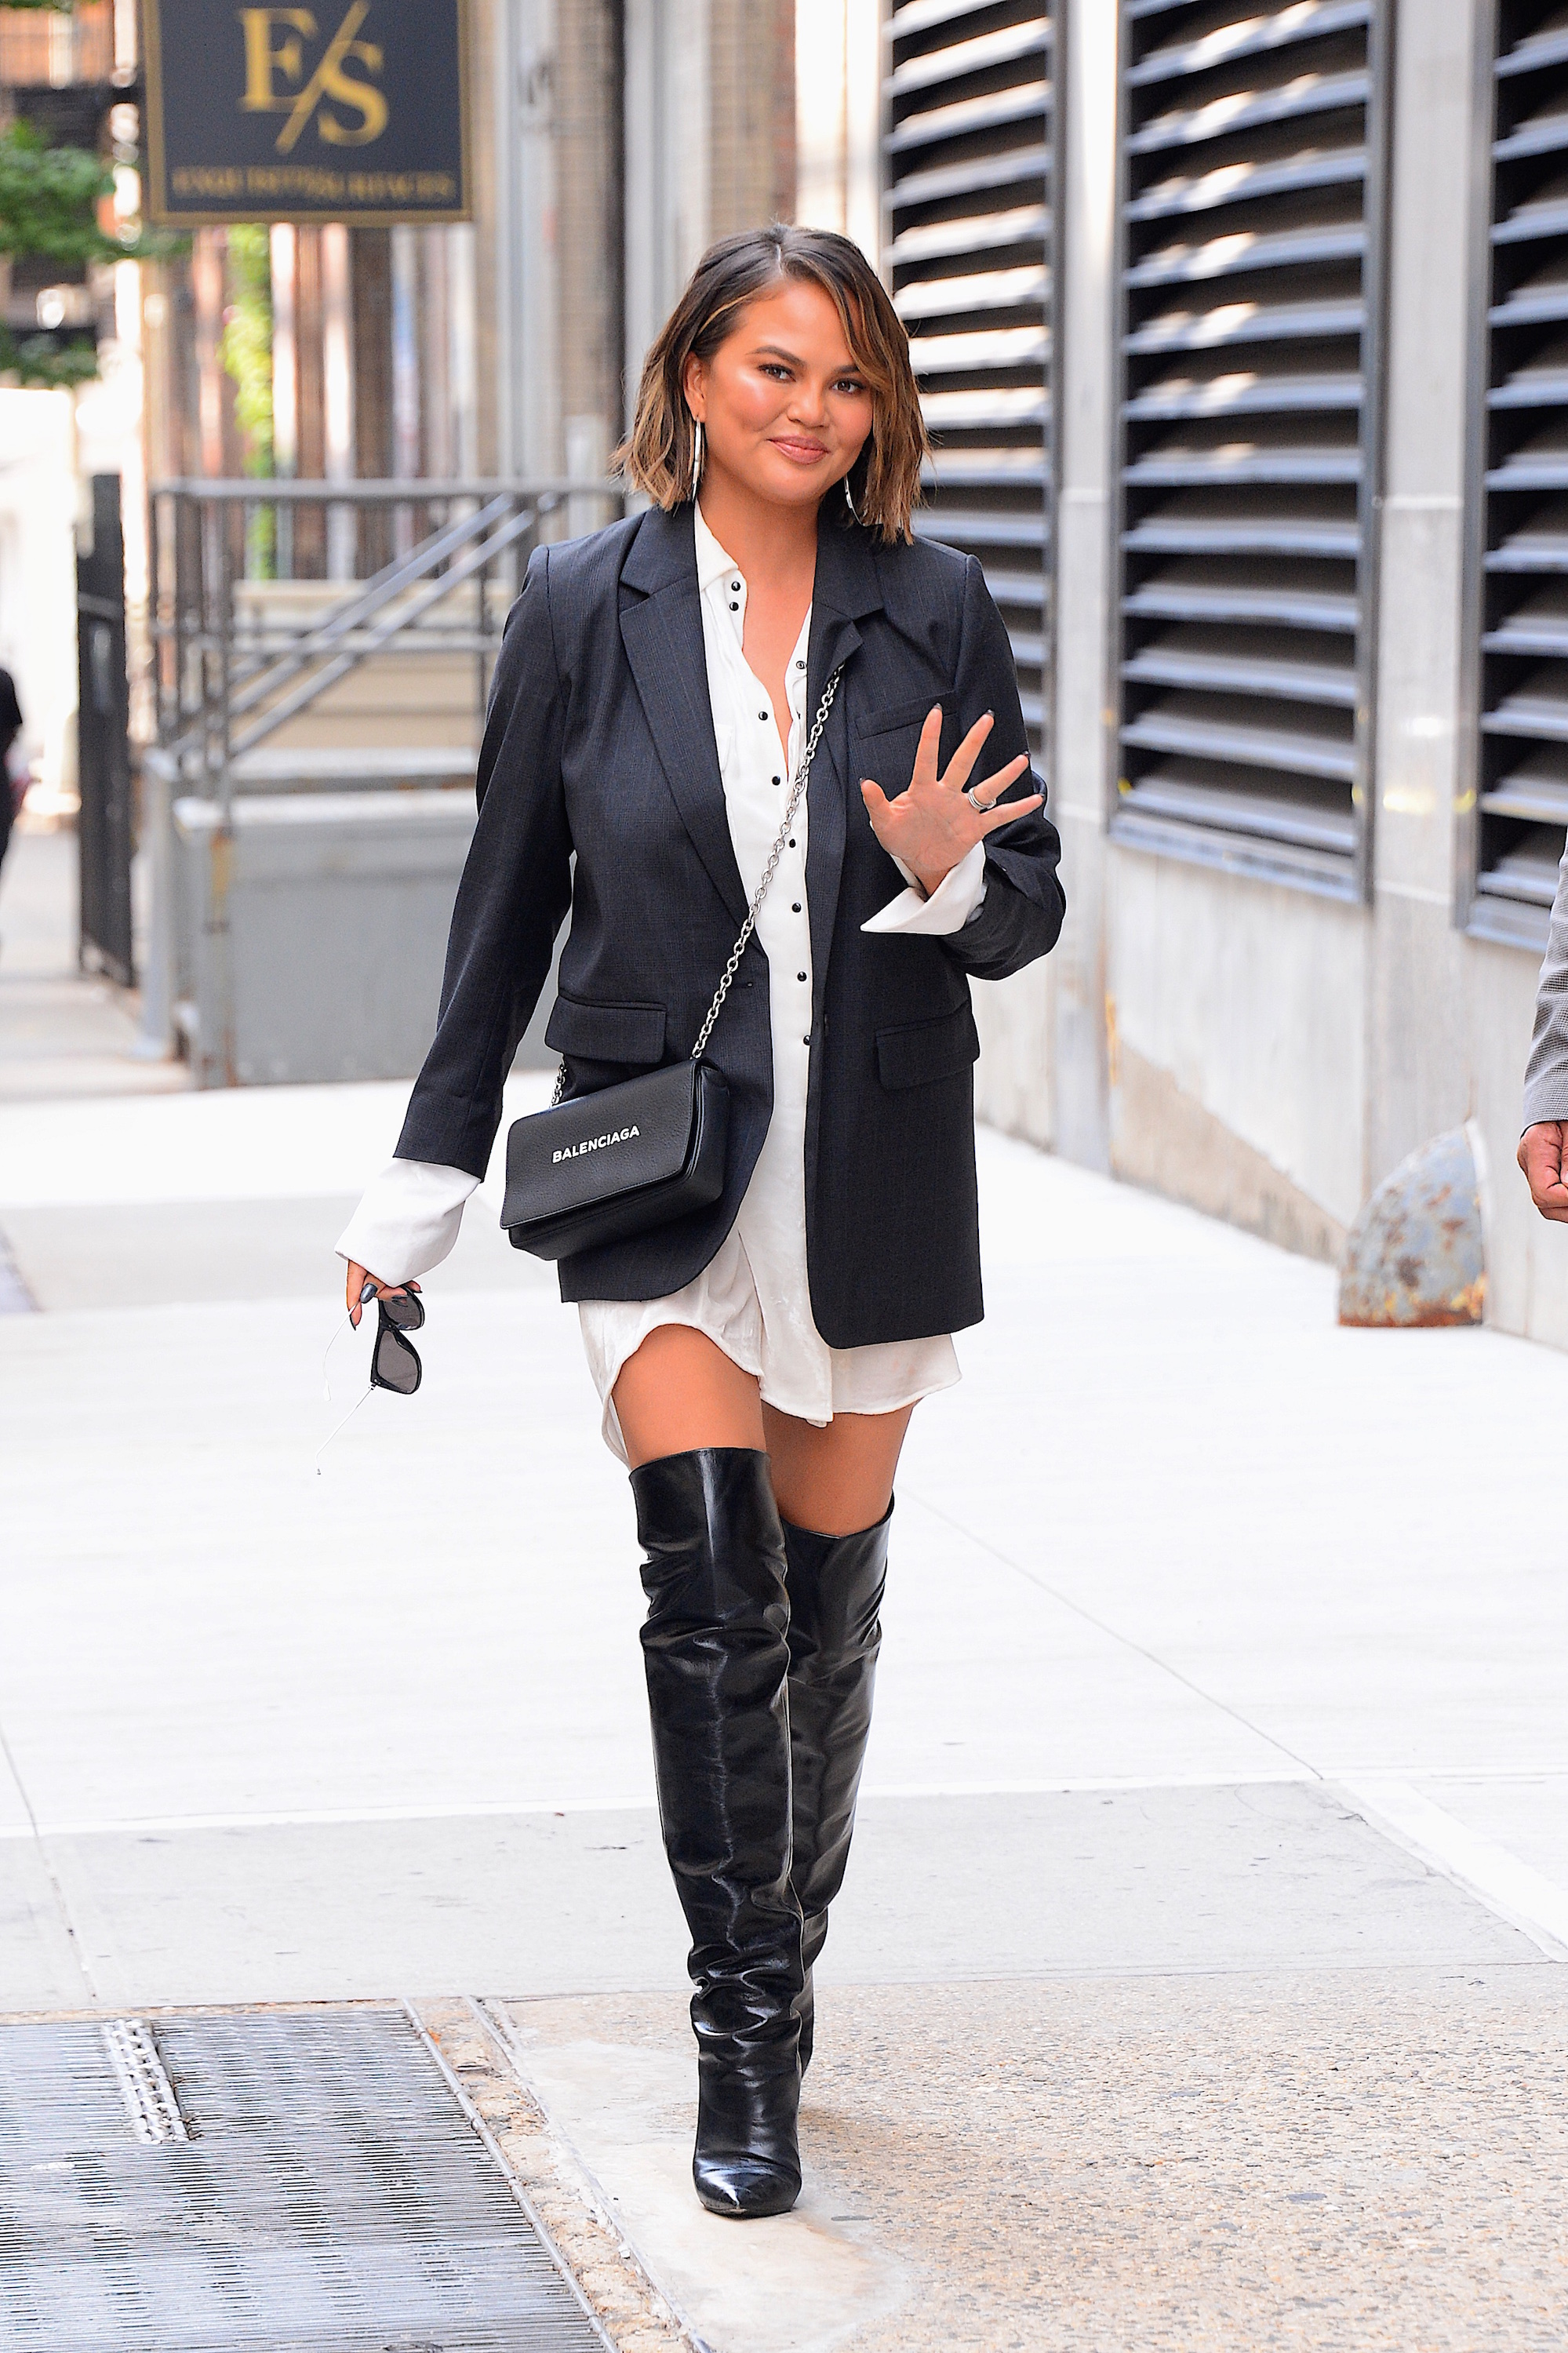 437cf1c8dcc528 Chrissy Teigen pulled a Blake lively and wore three outfits in one day